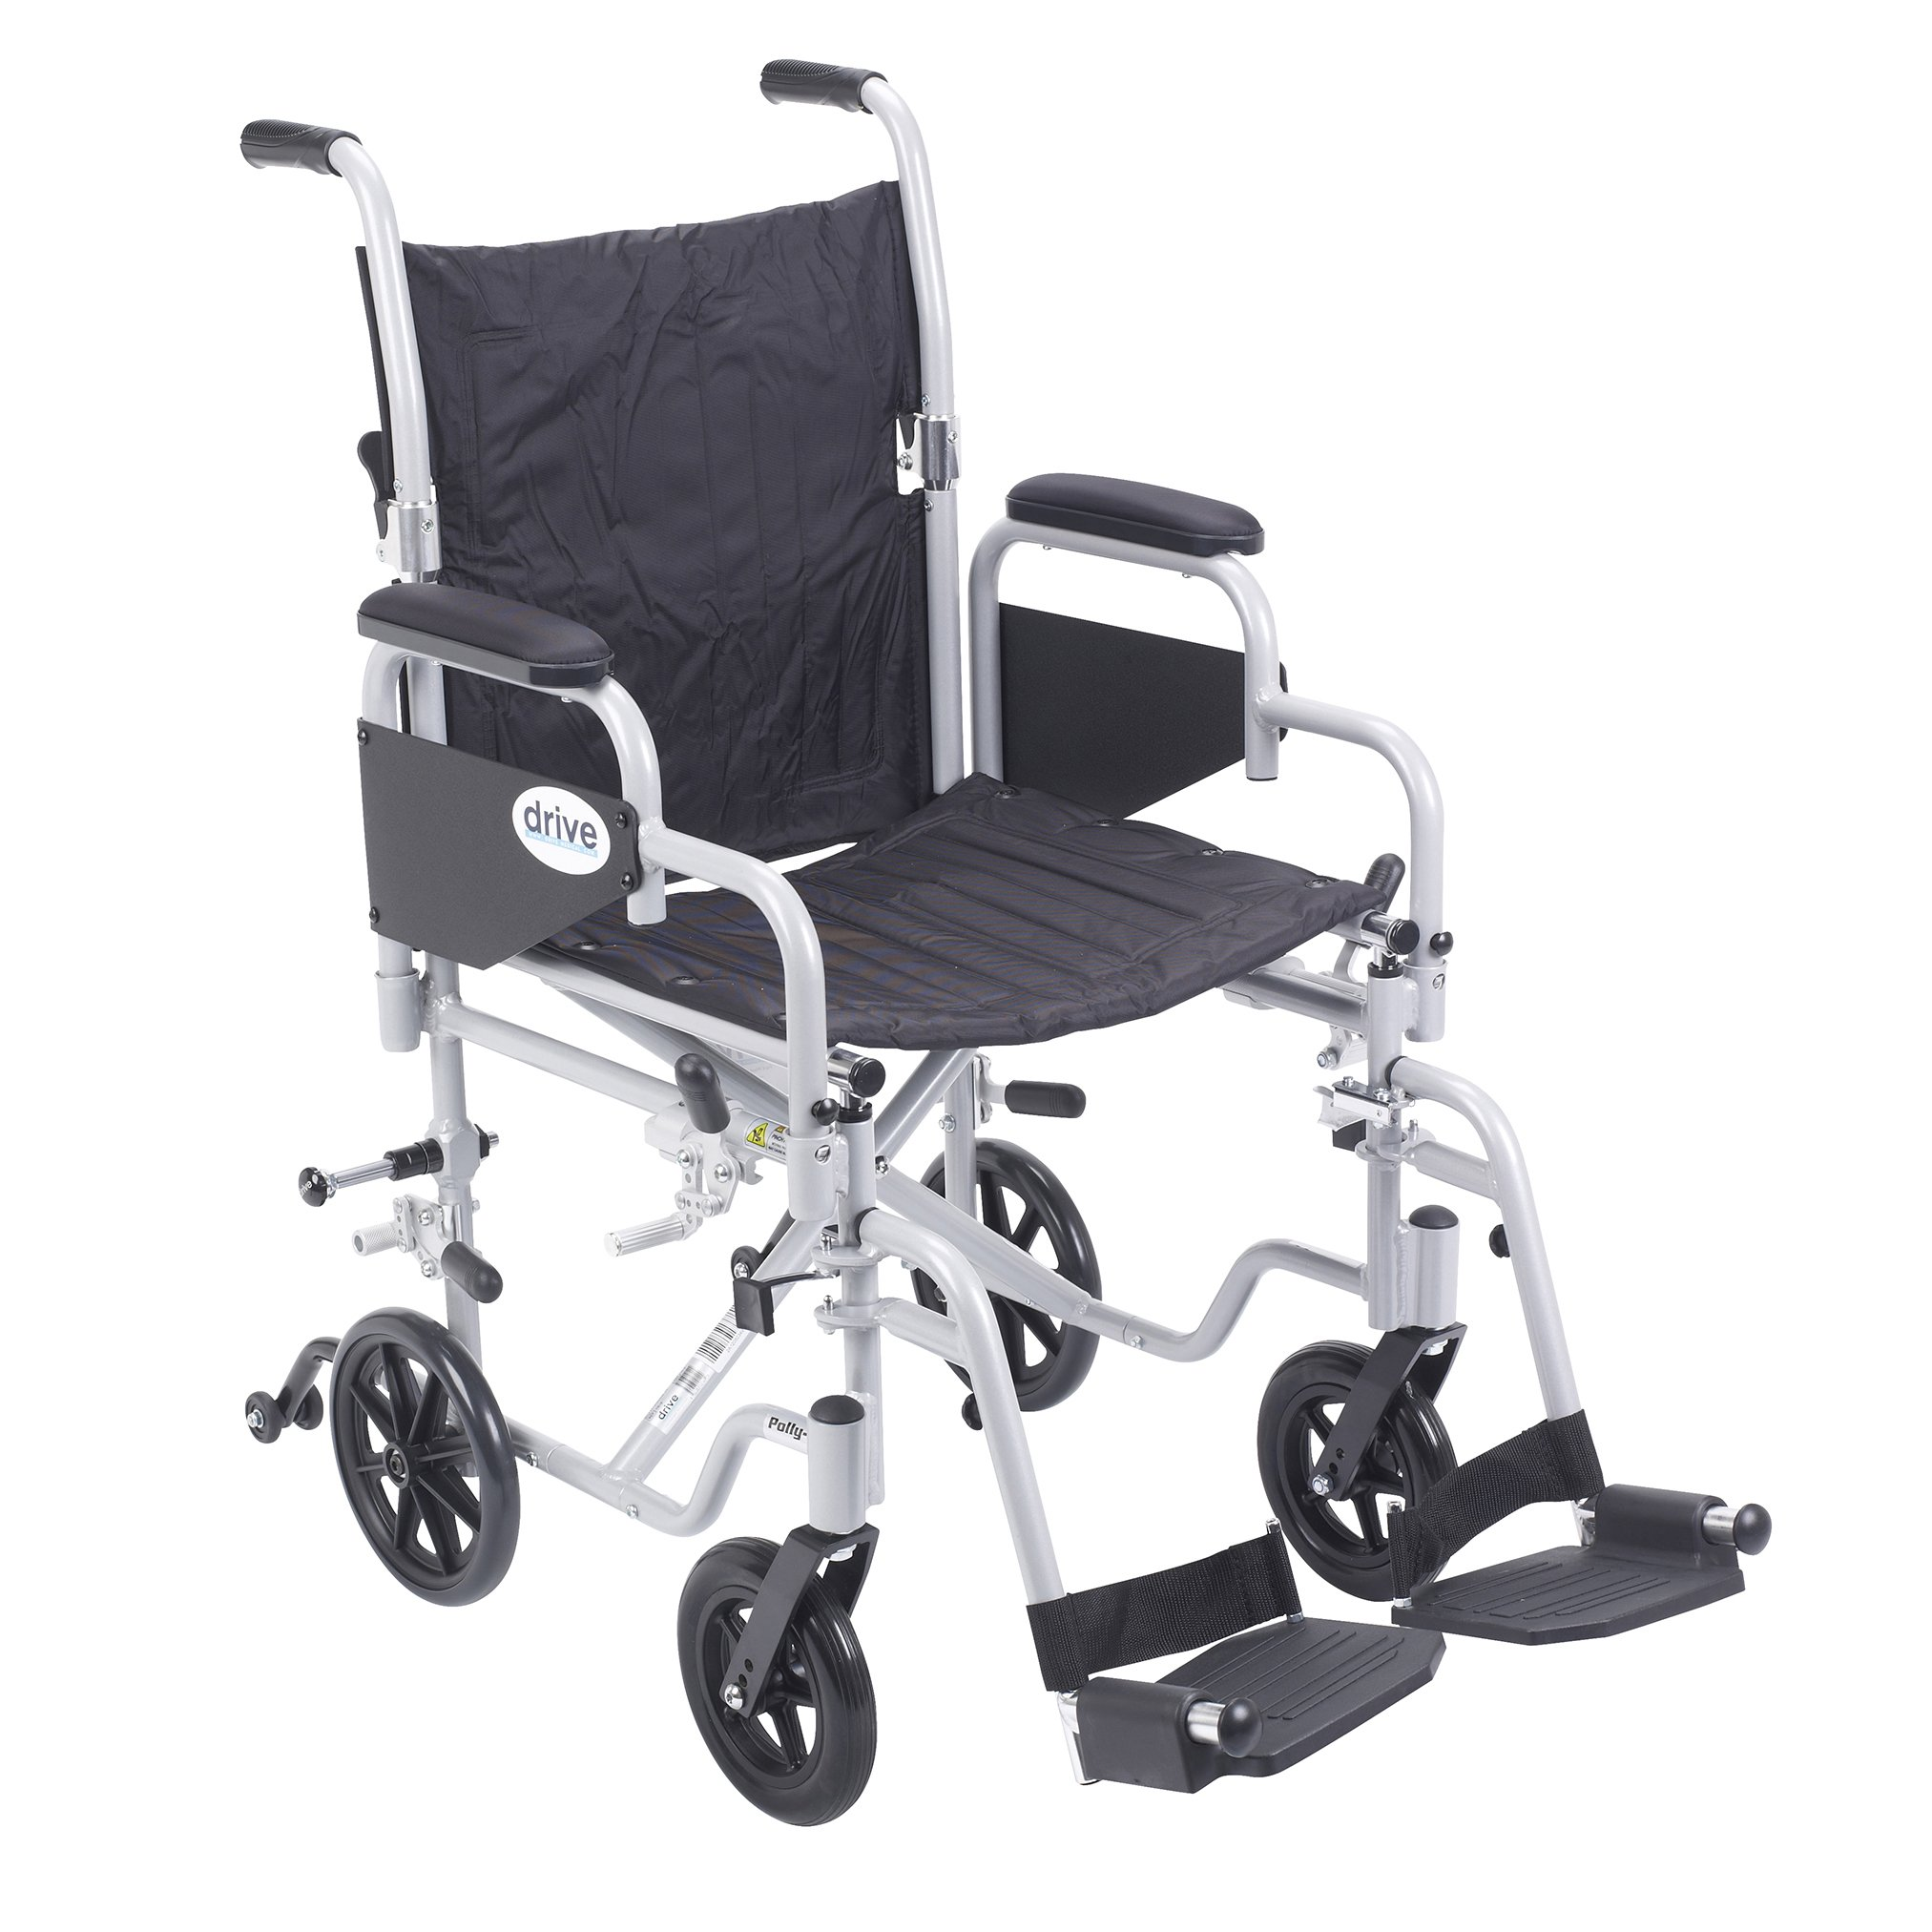 Drive Medical Poly Fly Light Weight Transport Chair Wheelchair with Swing-away Footrest, Silver, 18''